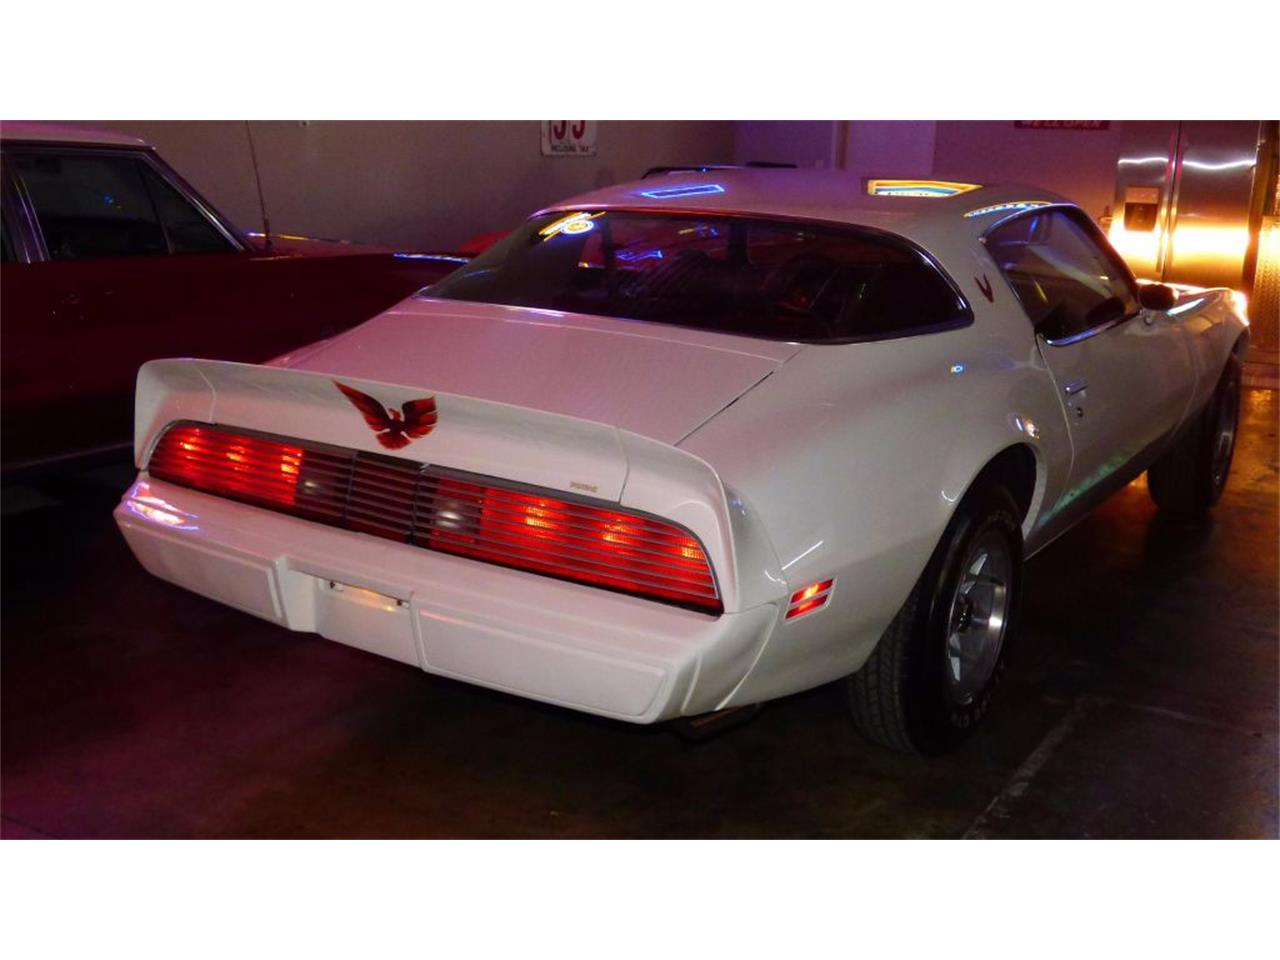 Large Picture of '79 Pontiac Firebird located in Georgia - $14,995.00 Offered by Cruisers Specialty Autos - F2EV